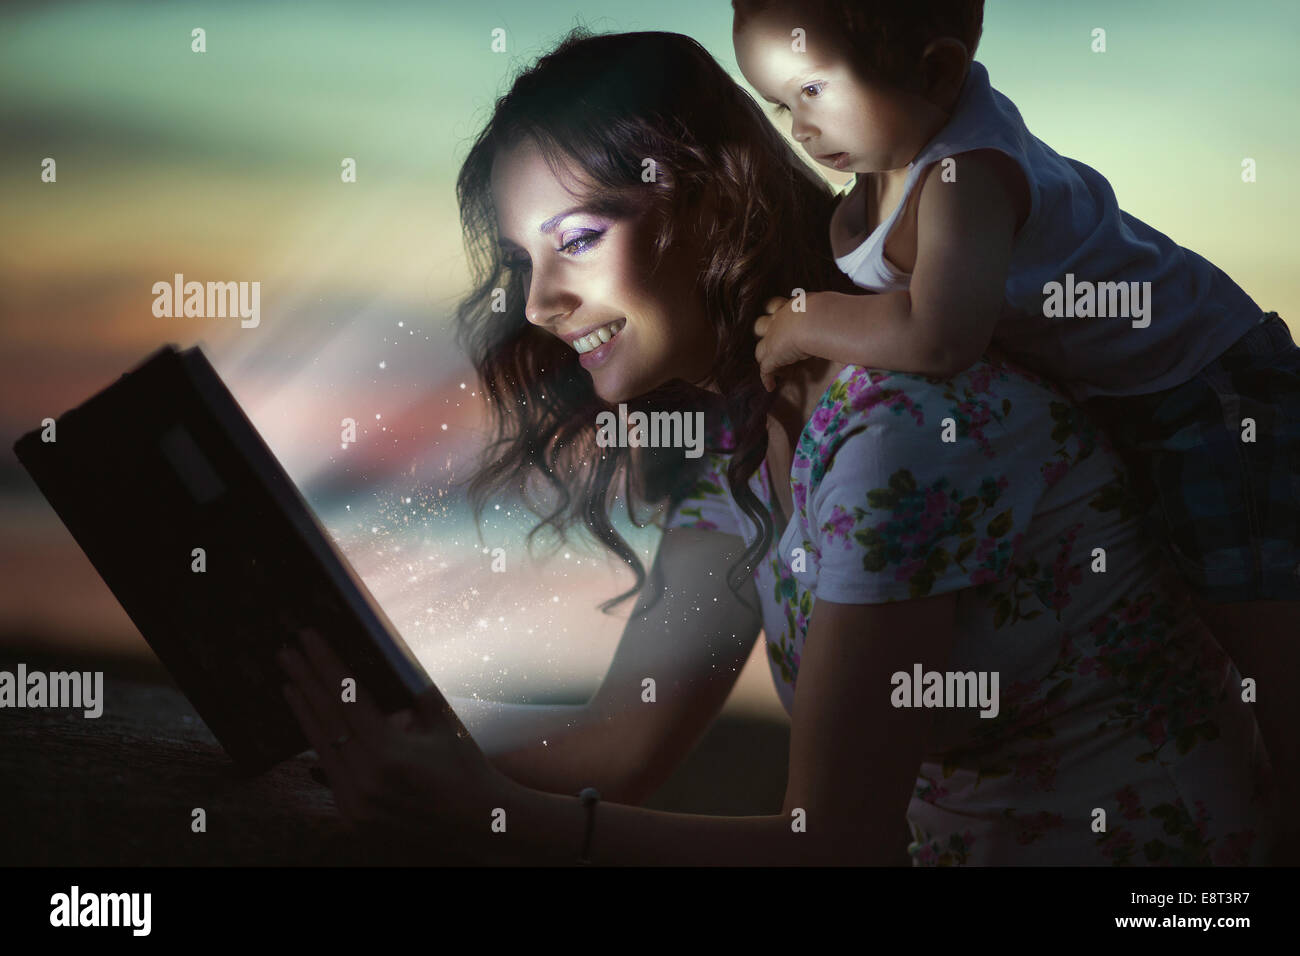 Mommy reading amazing book for her baby - Stock Image